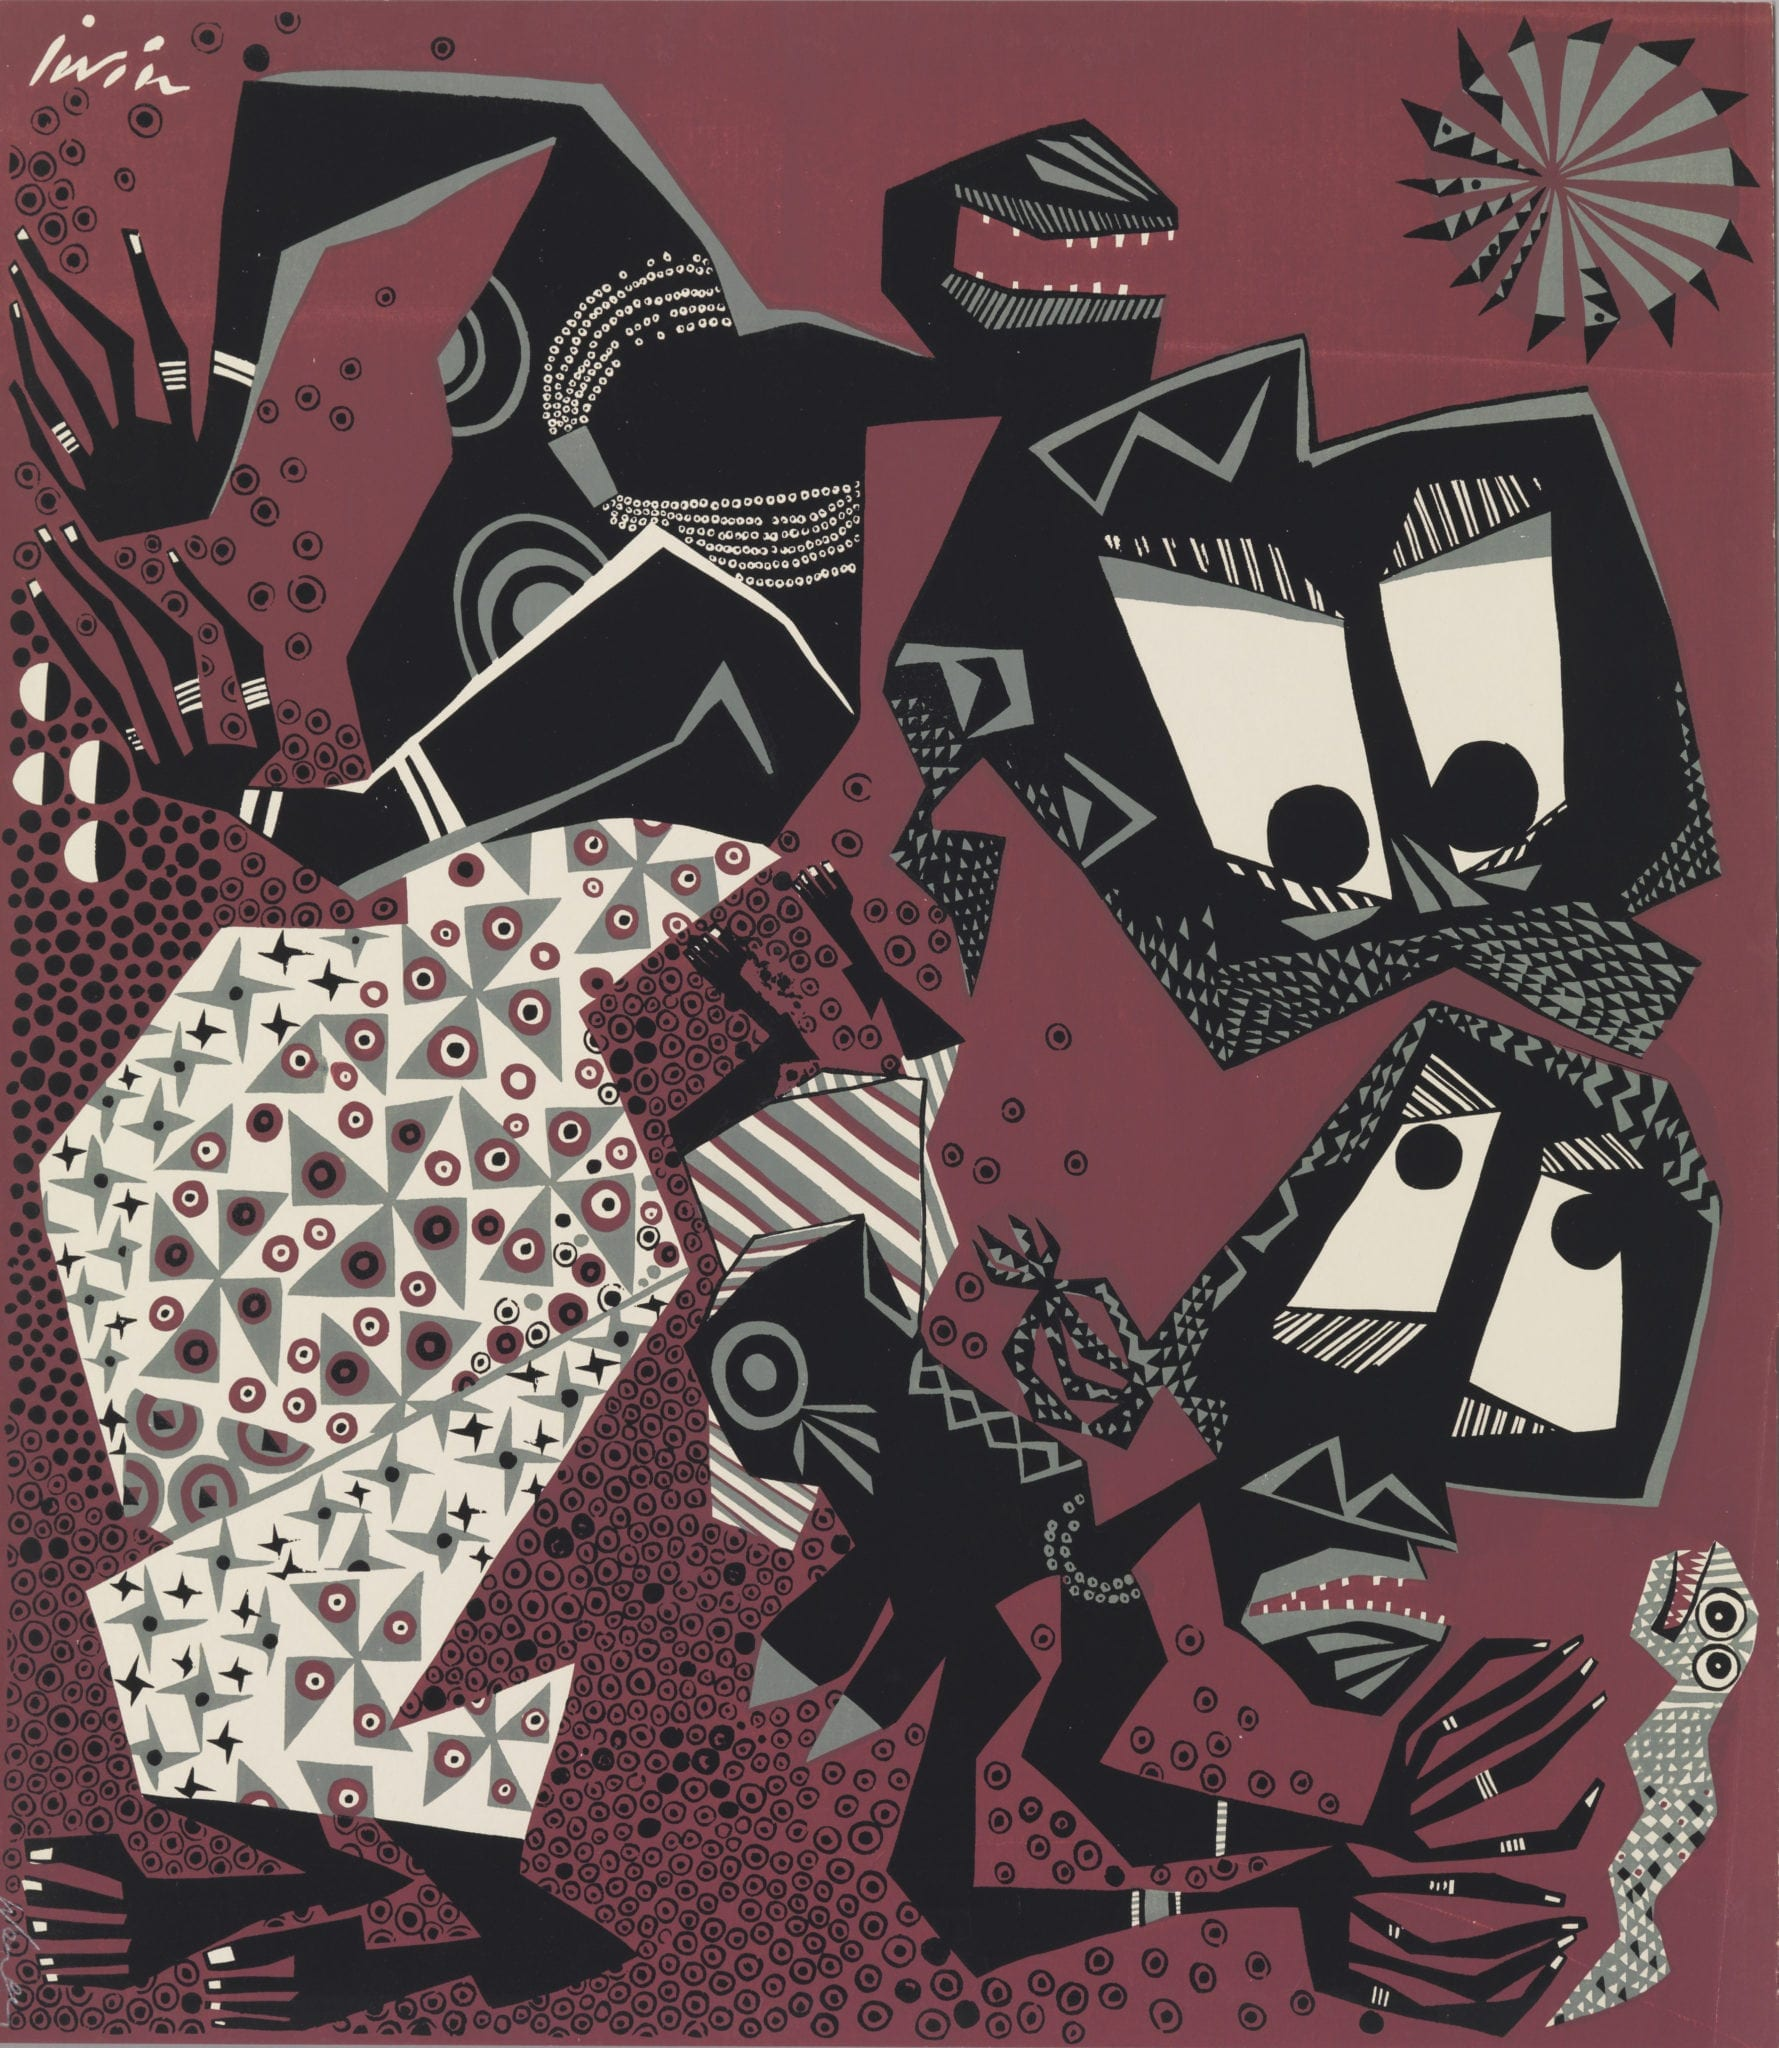 Susanne Wenger (Nigerian, Born Austria, 1915 – 2009) Untitled. ca. 1960. Screenprint. Gift of Graham and Maryagnes Kerr © Susanne Wenger Foundation. Photo by Bruce M. White, 2014, courtesy of the Michael C. Carlos Museum, Emory University.